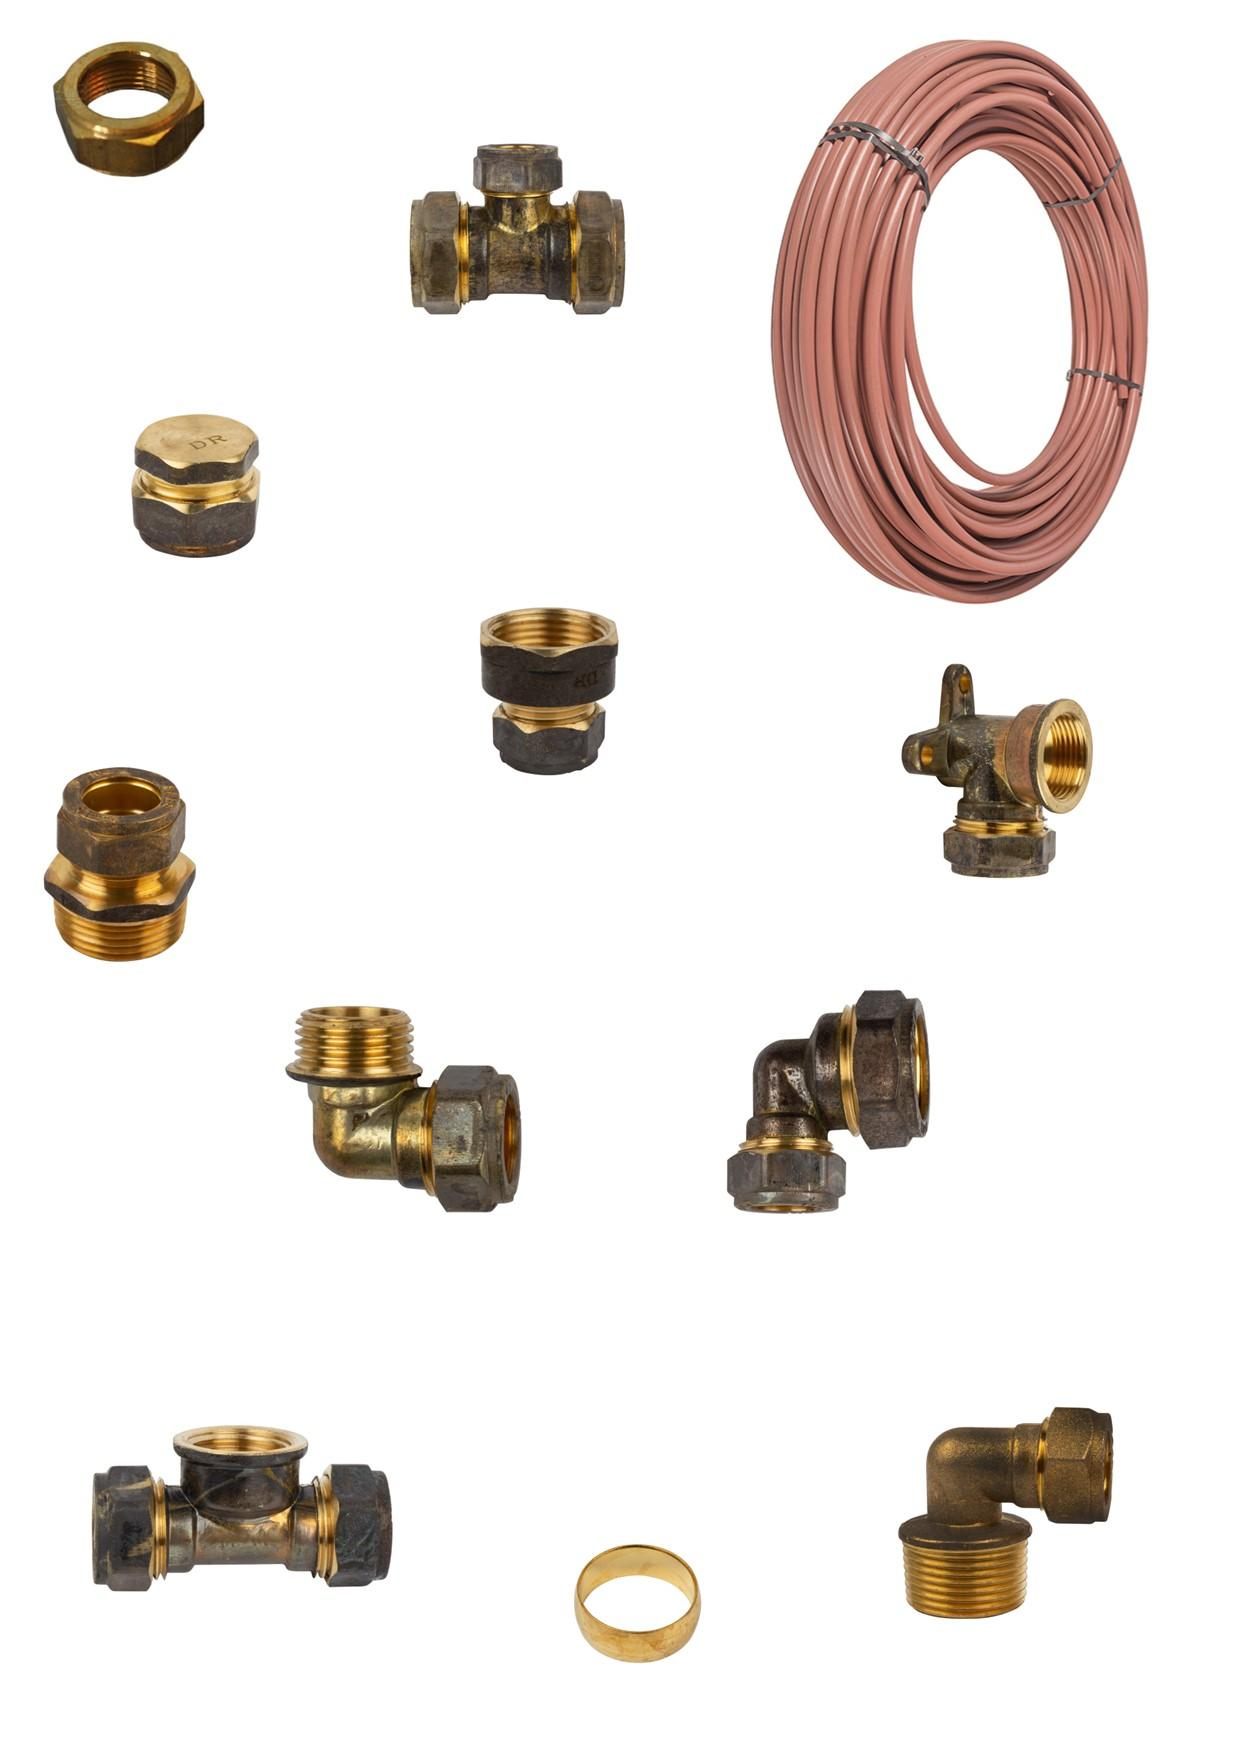 irrigation-suppliers-joints-copper